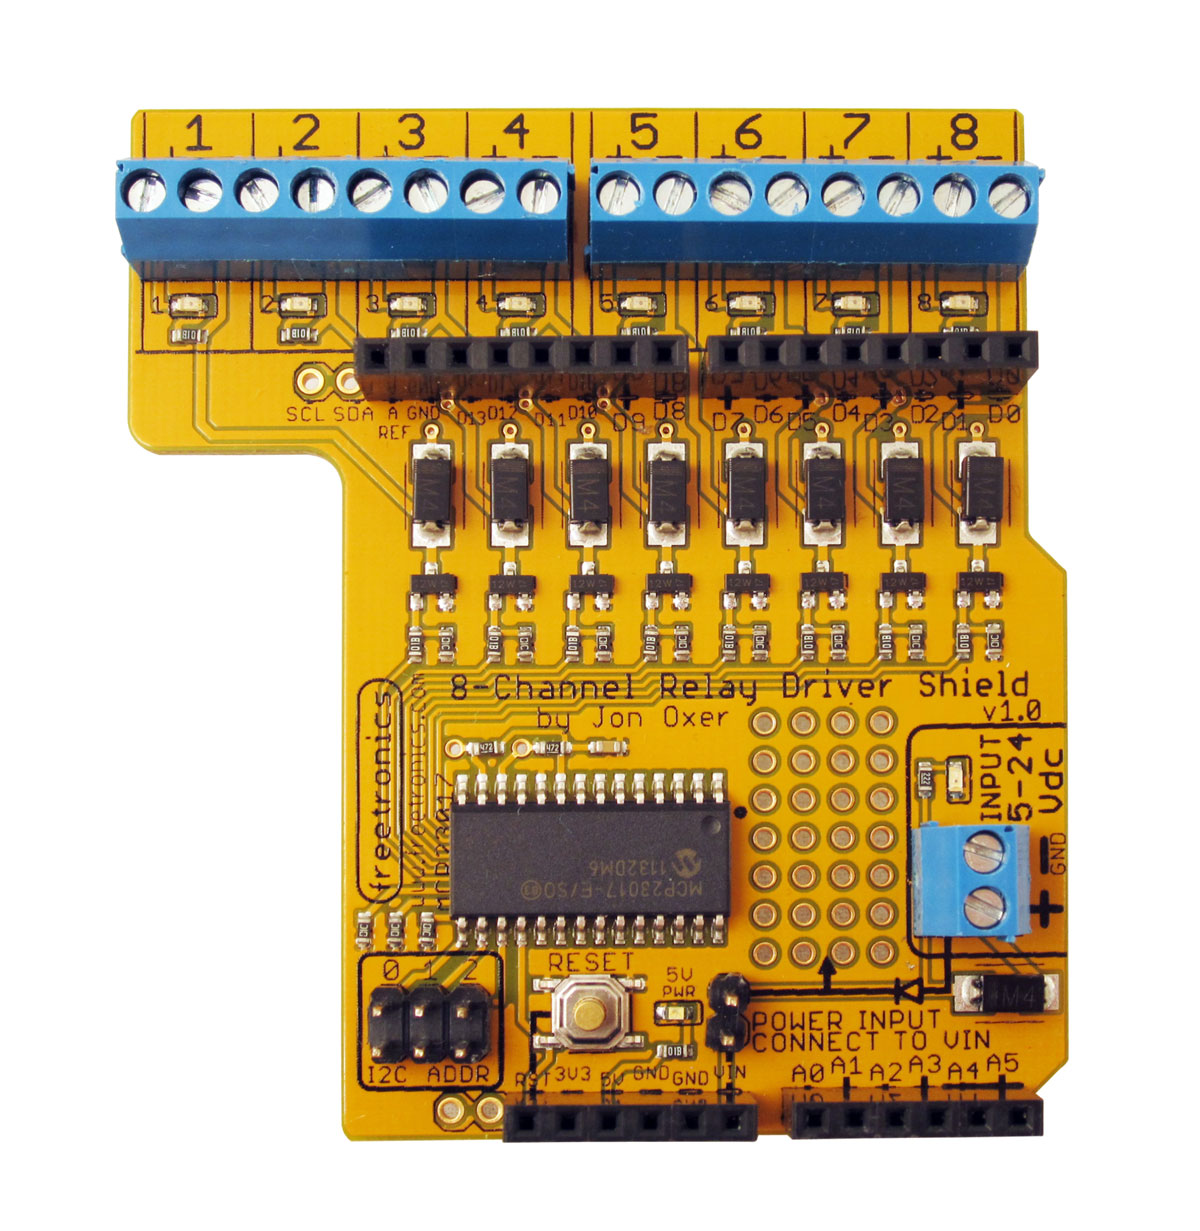 24 volt 8 pin relay wiring diagram 8-channel relay driver shield – superhouse automation arduino 8 channel relay wiring diagram #13